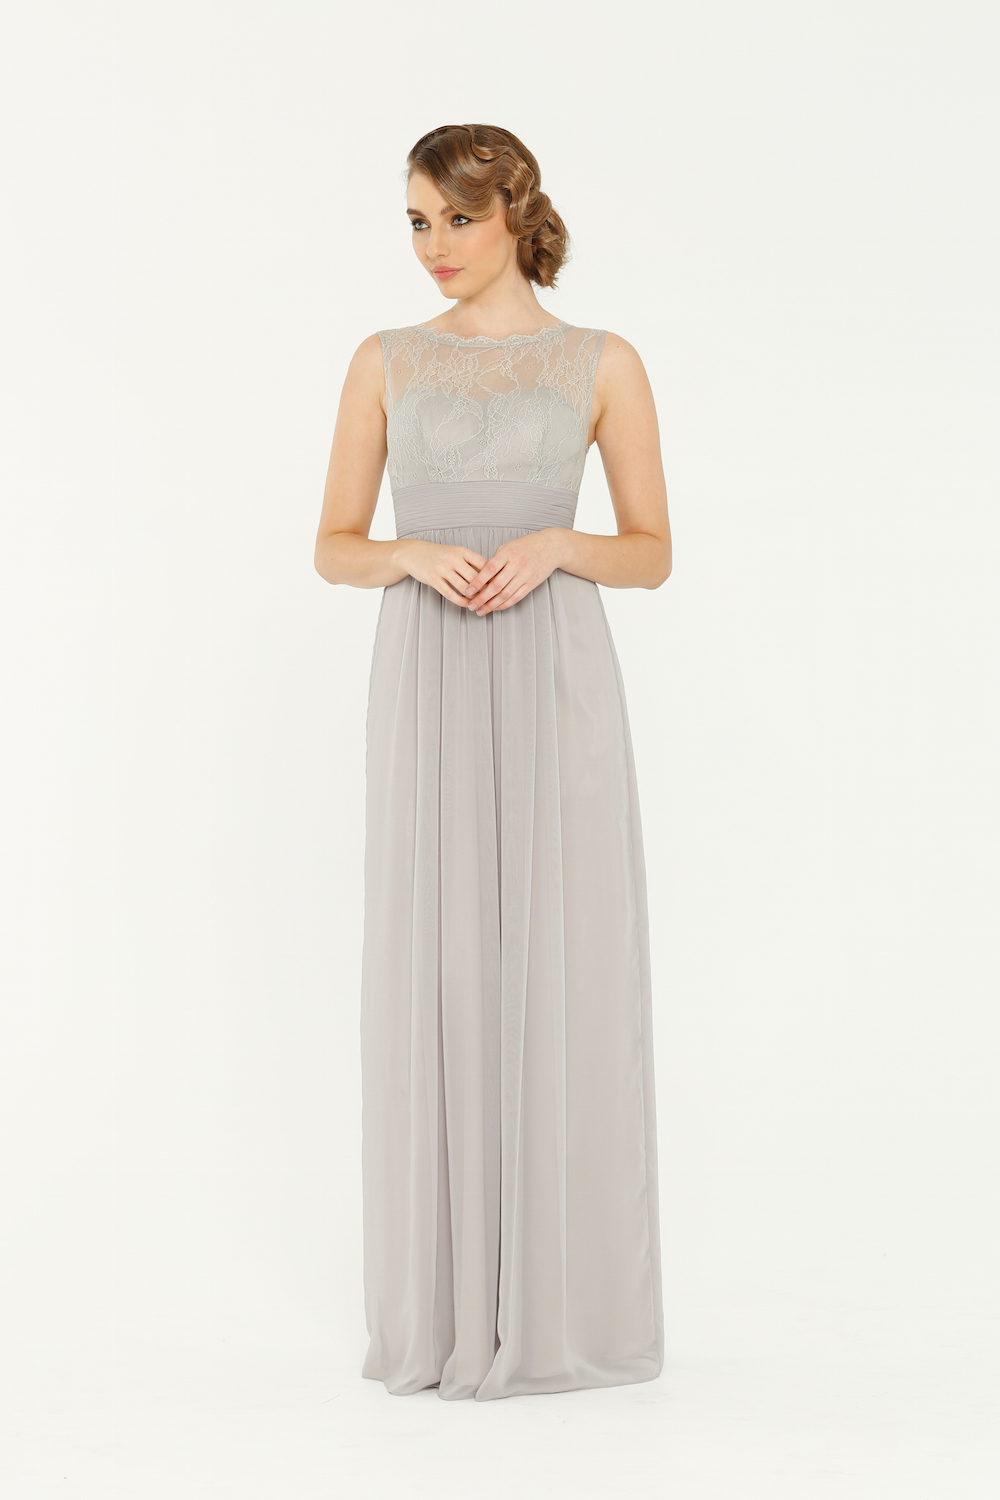 Charlotte Grey Bridesmaid Dress